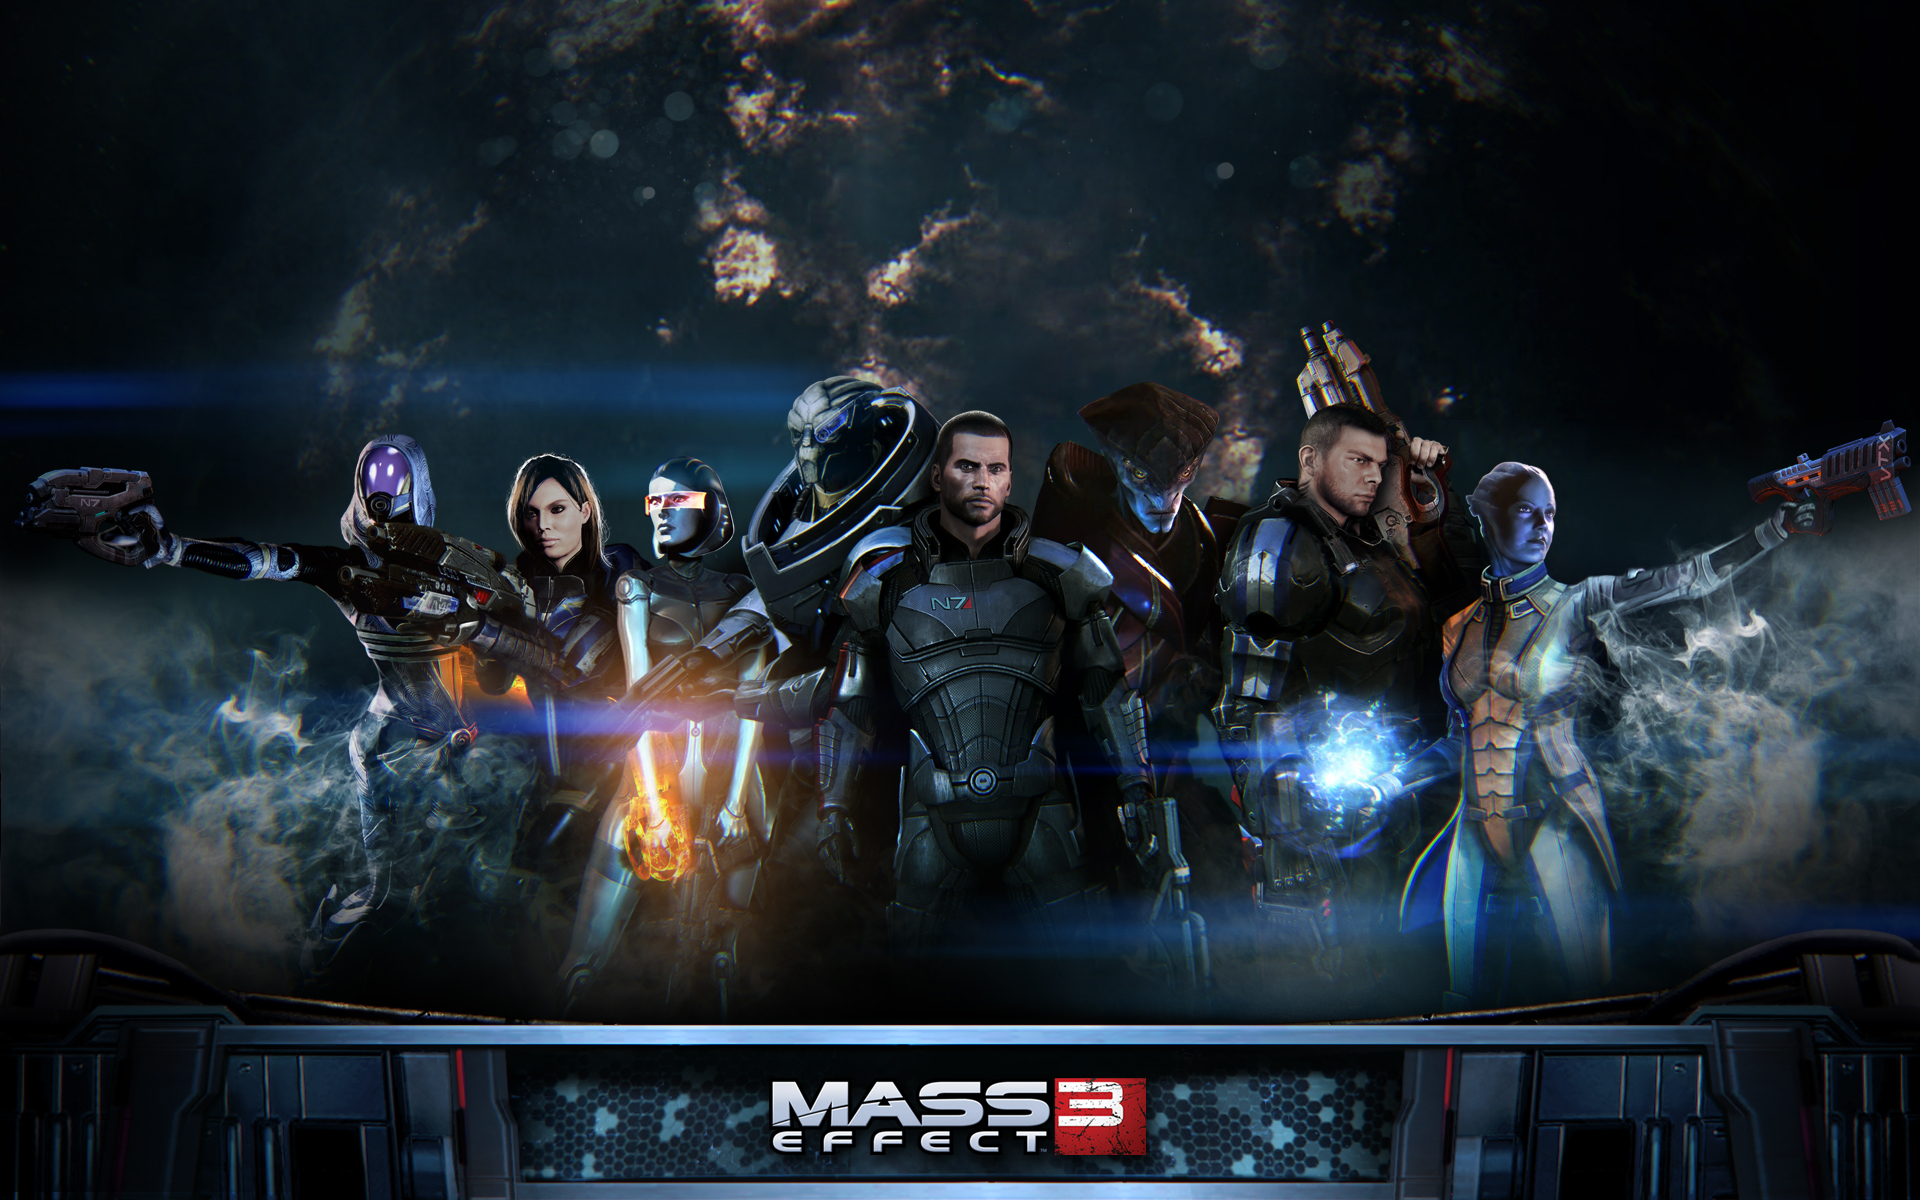 mass effect 3 extended cut wide Chris Top 5 Games of 2012